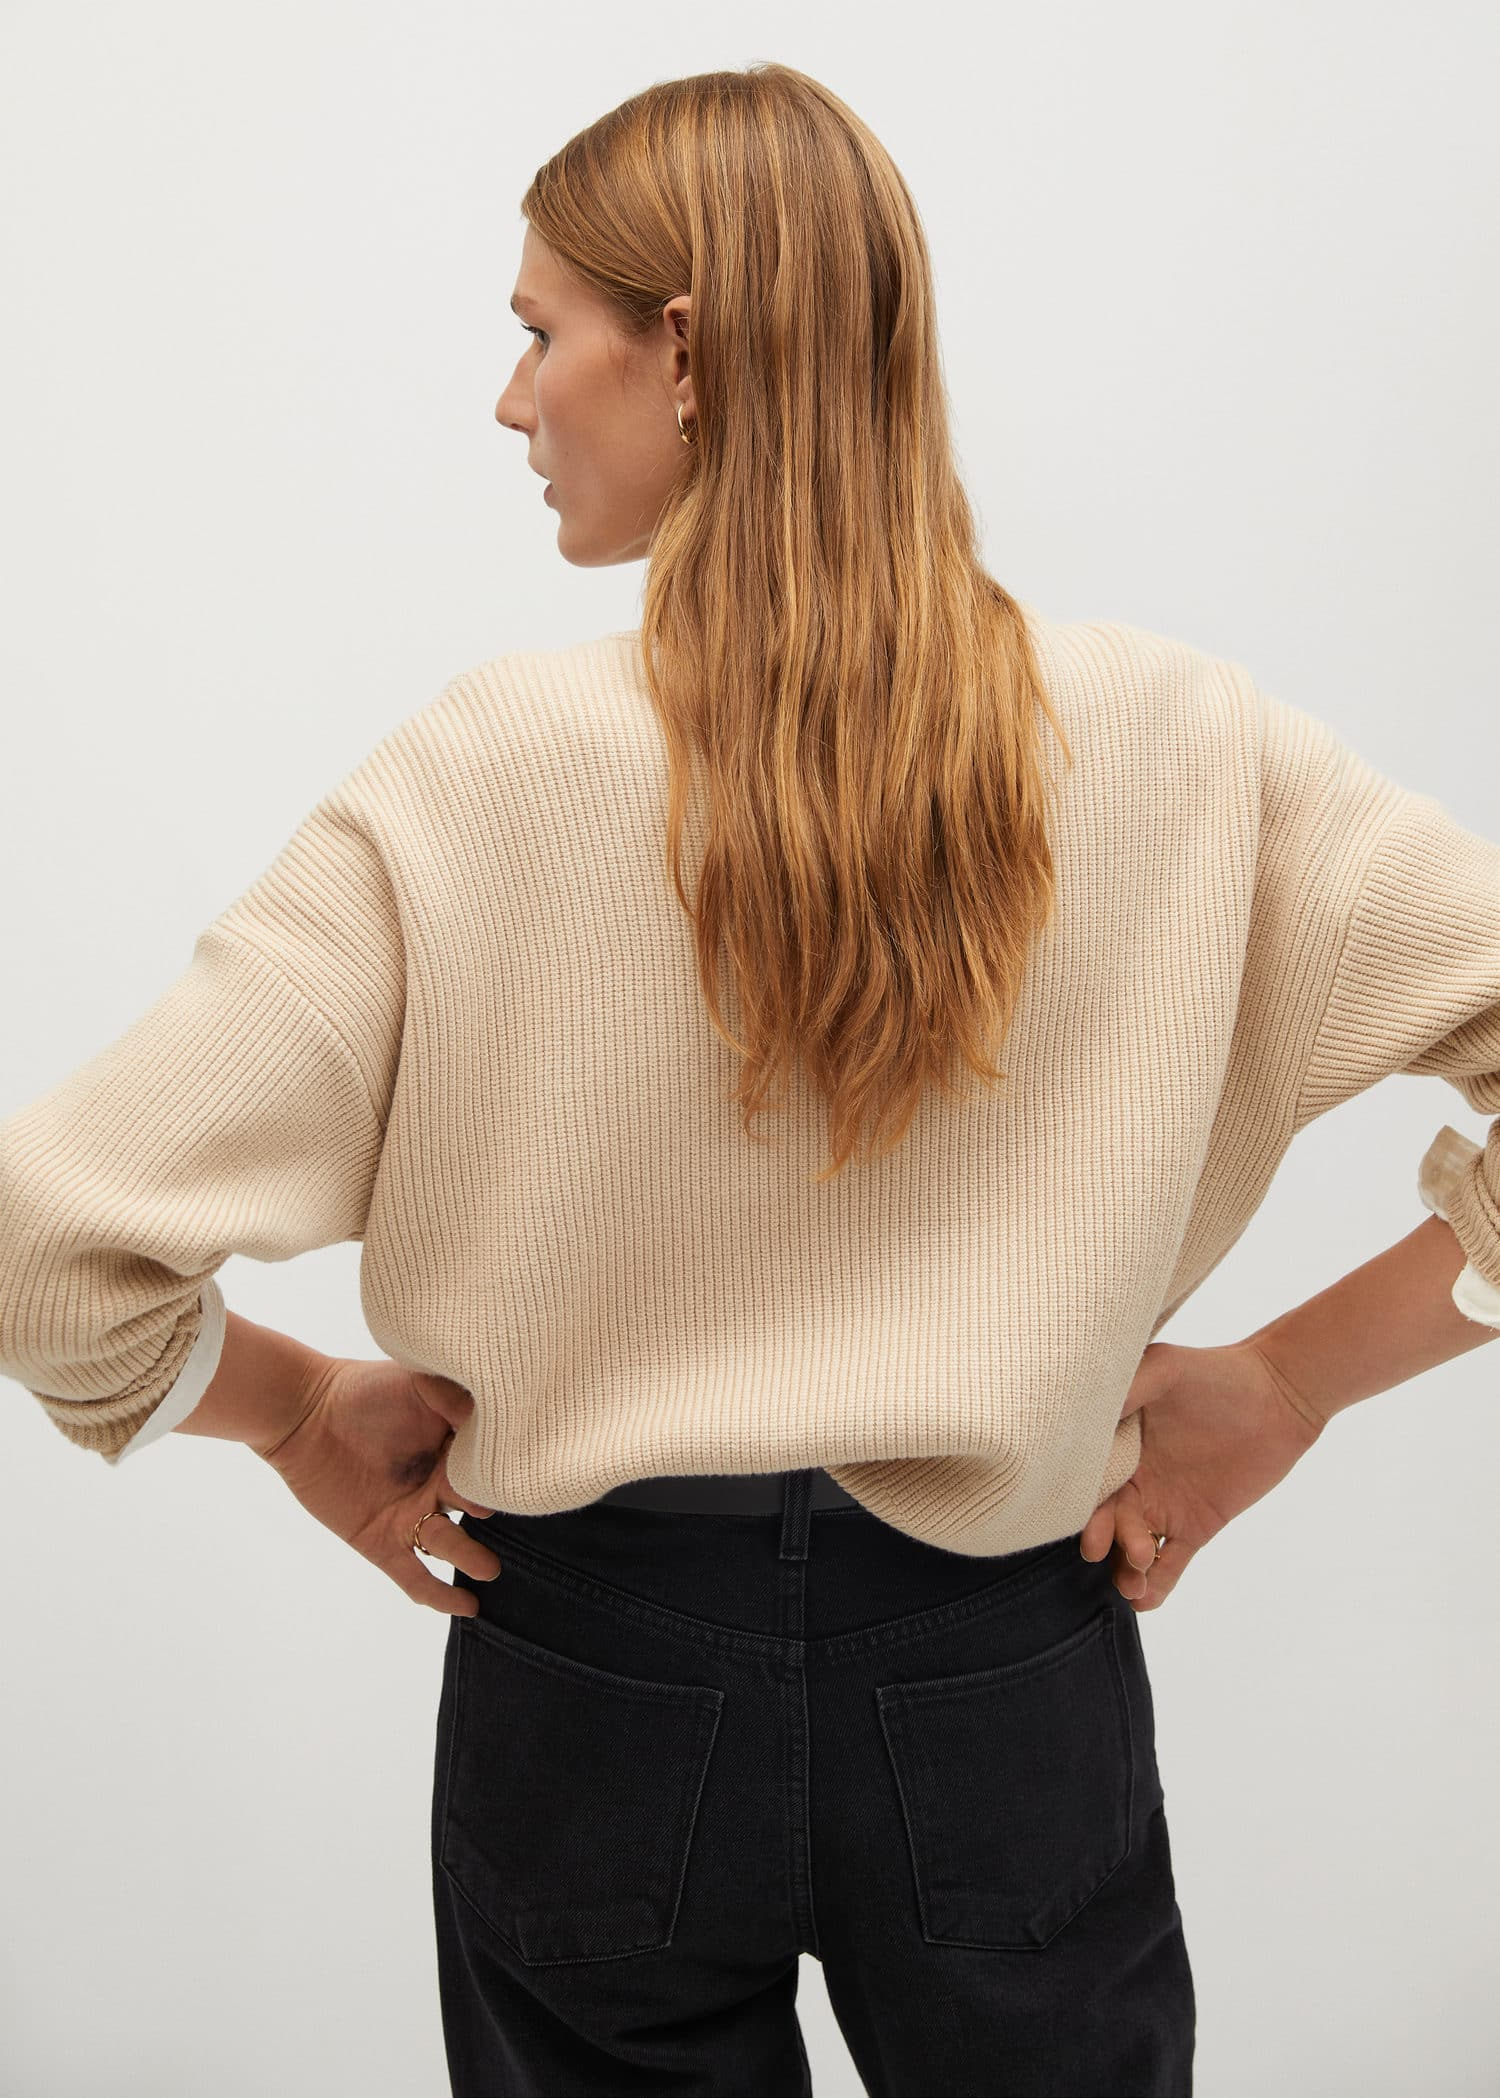 Sweaters Cardigans and sweaters for Women 2020   Mango USA